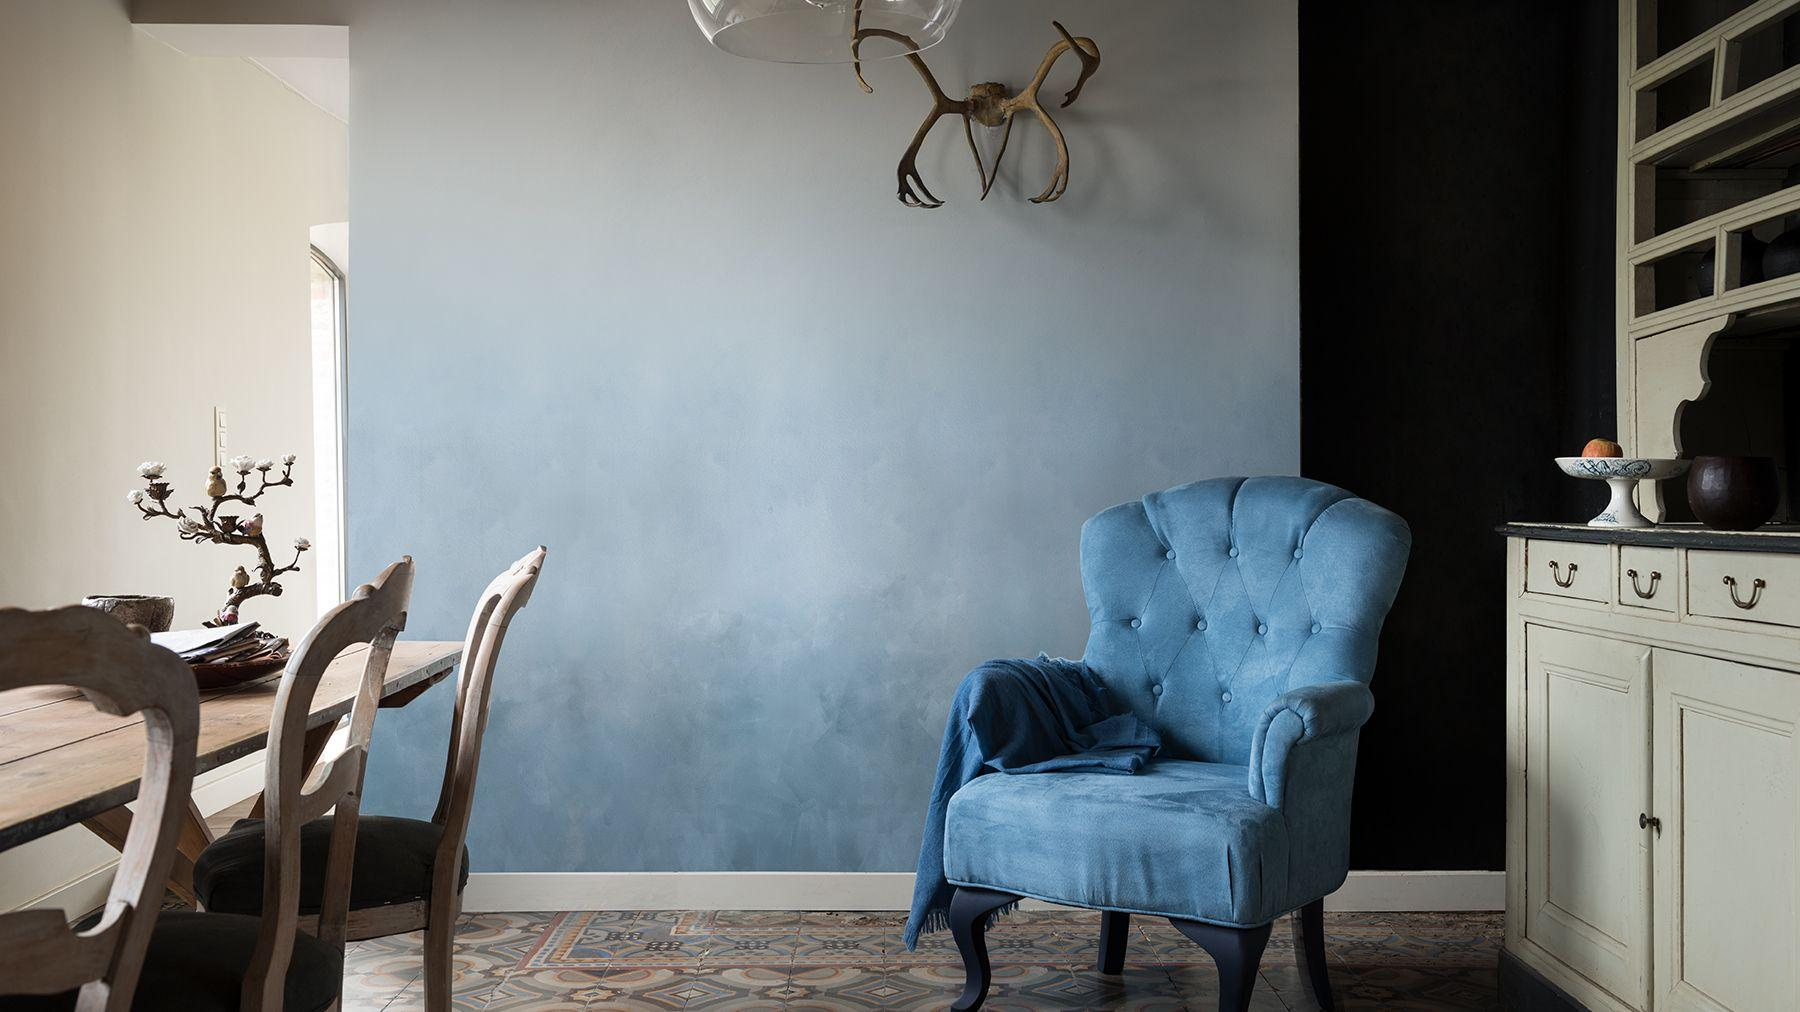 Blue room decor ideas for stylish, calm living spaces